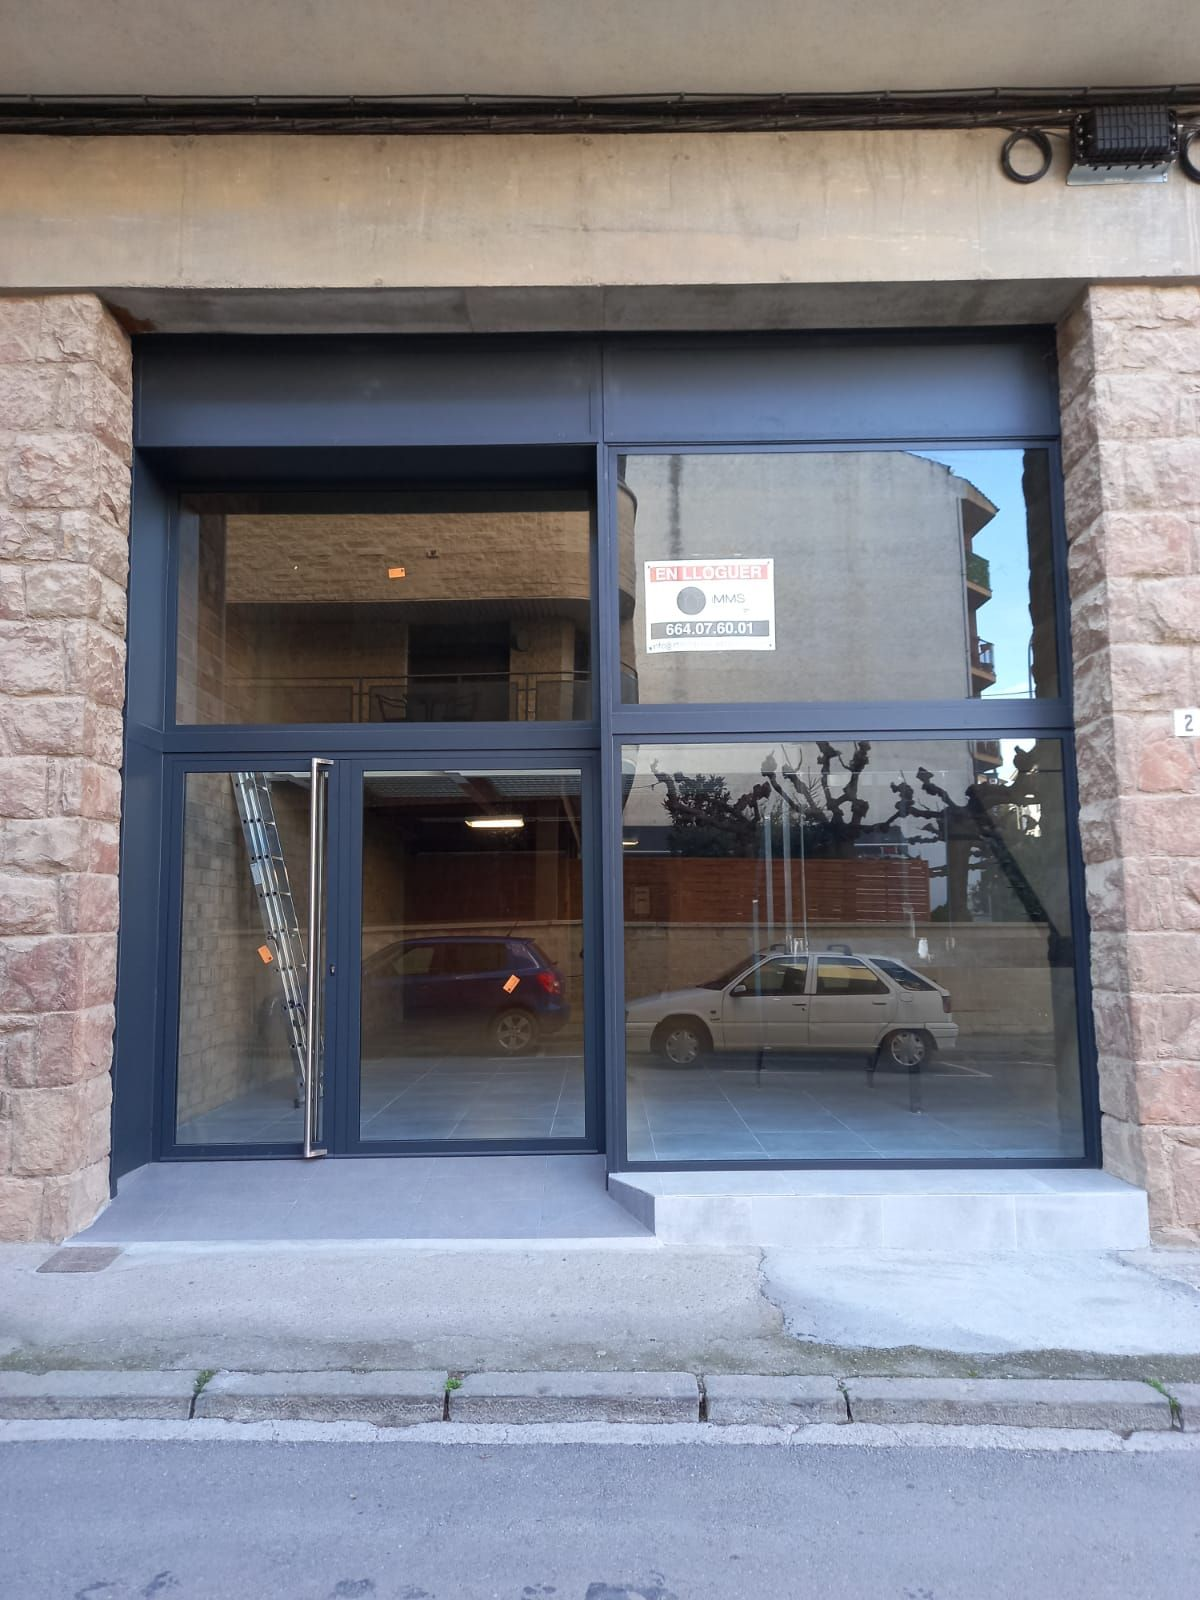 Rent Business premise in Solsona. Local comercial con gran escaparate y amplia puerta de entrada.